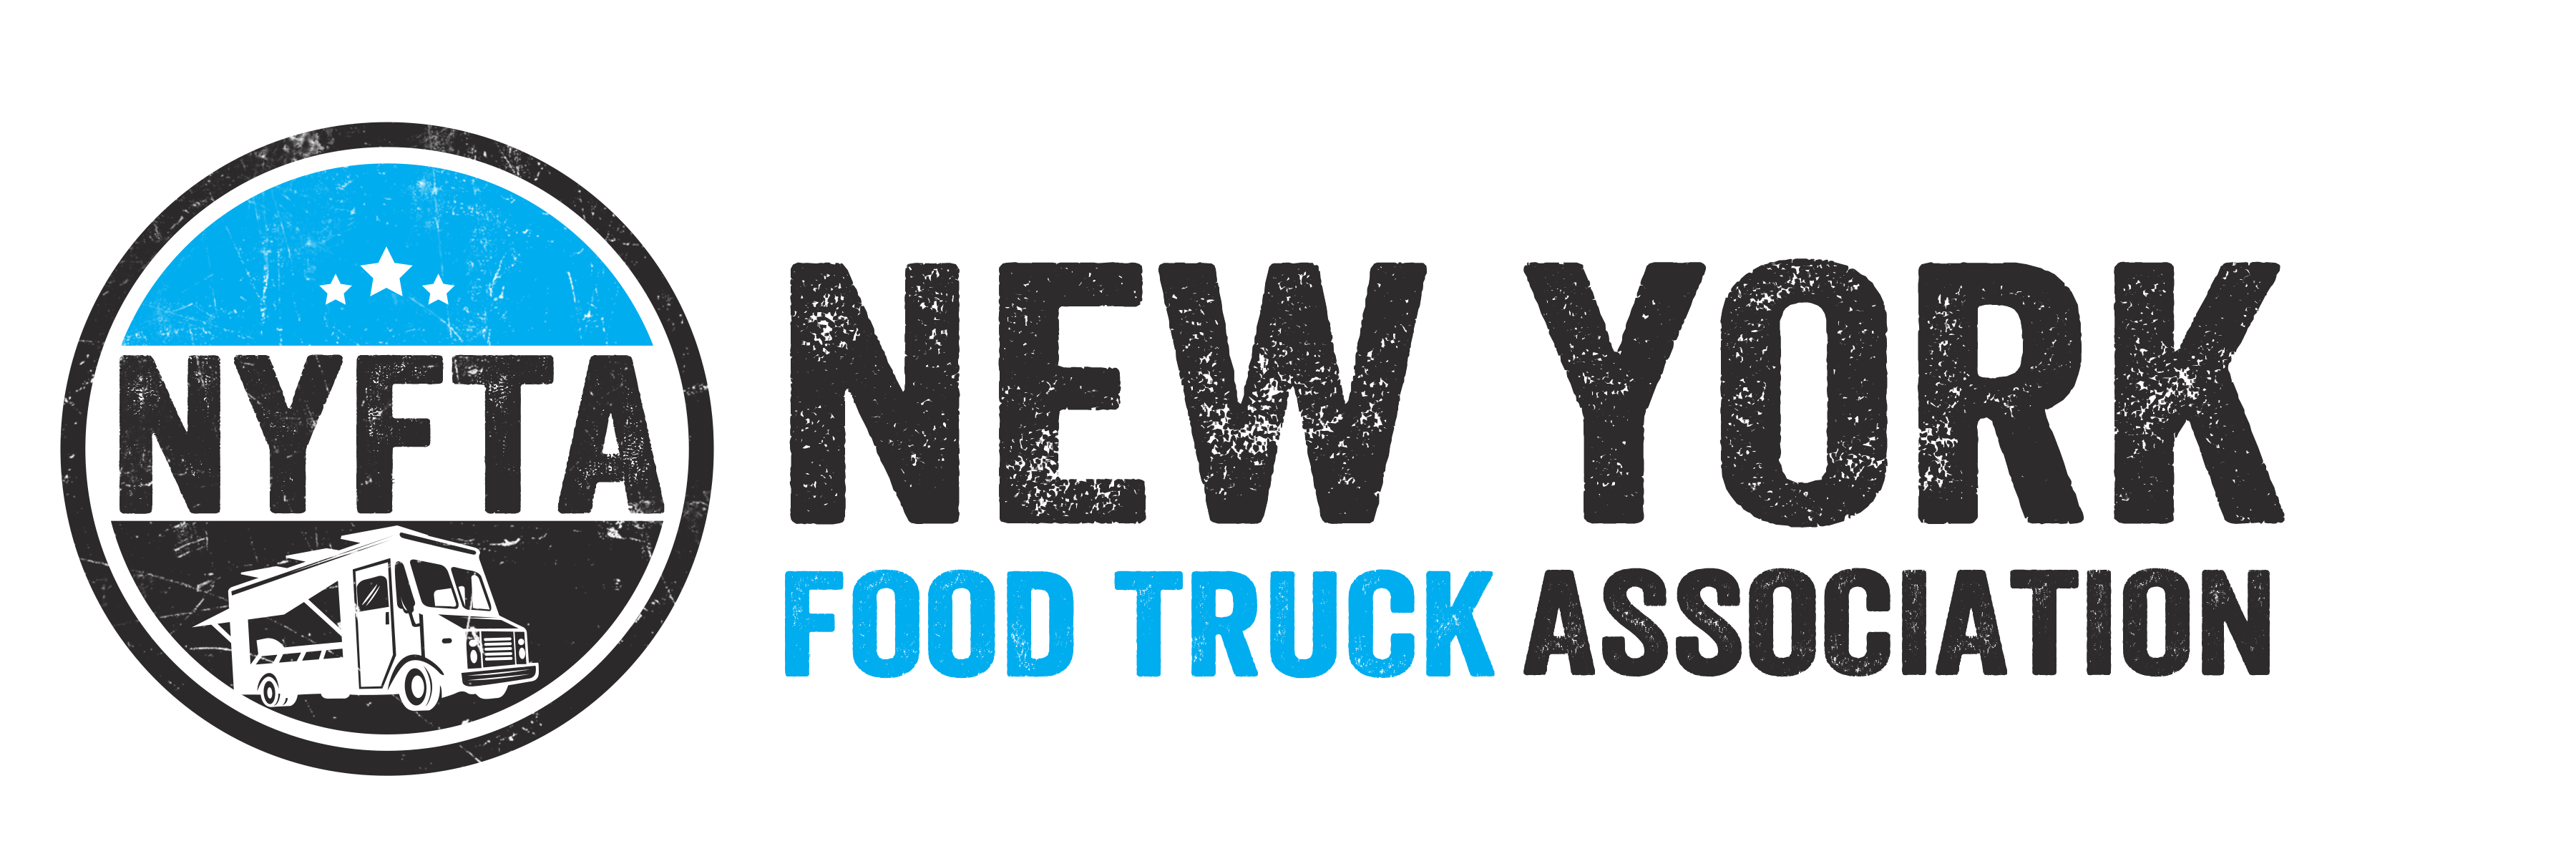 NYFTA 2021 Outlook: The Impact of COVID-19 On The Mobile Food And Beverage Industry And Projected Recovery In New York City And Other Metropolitan Areas